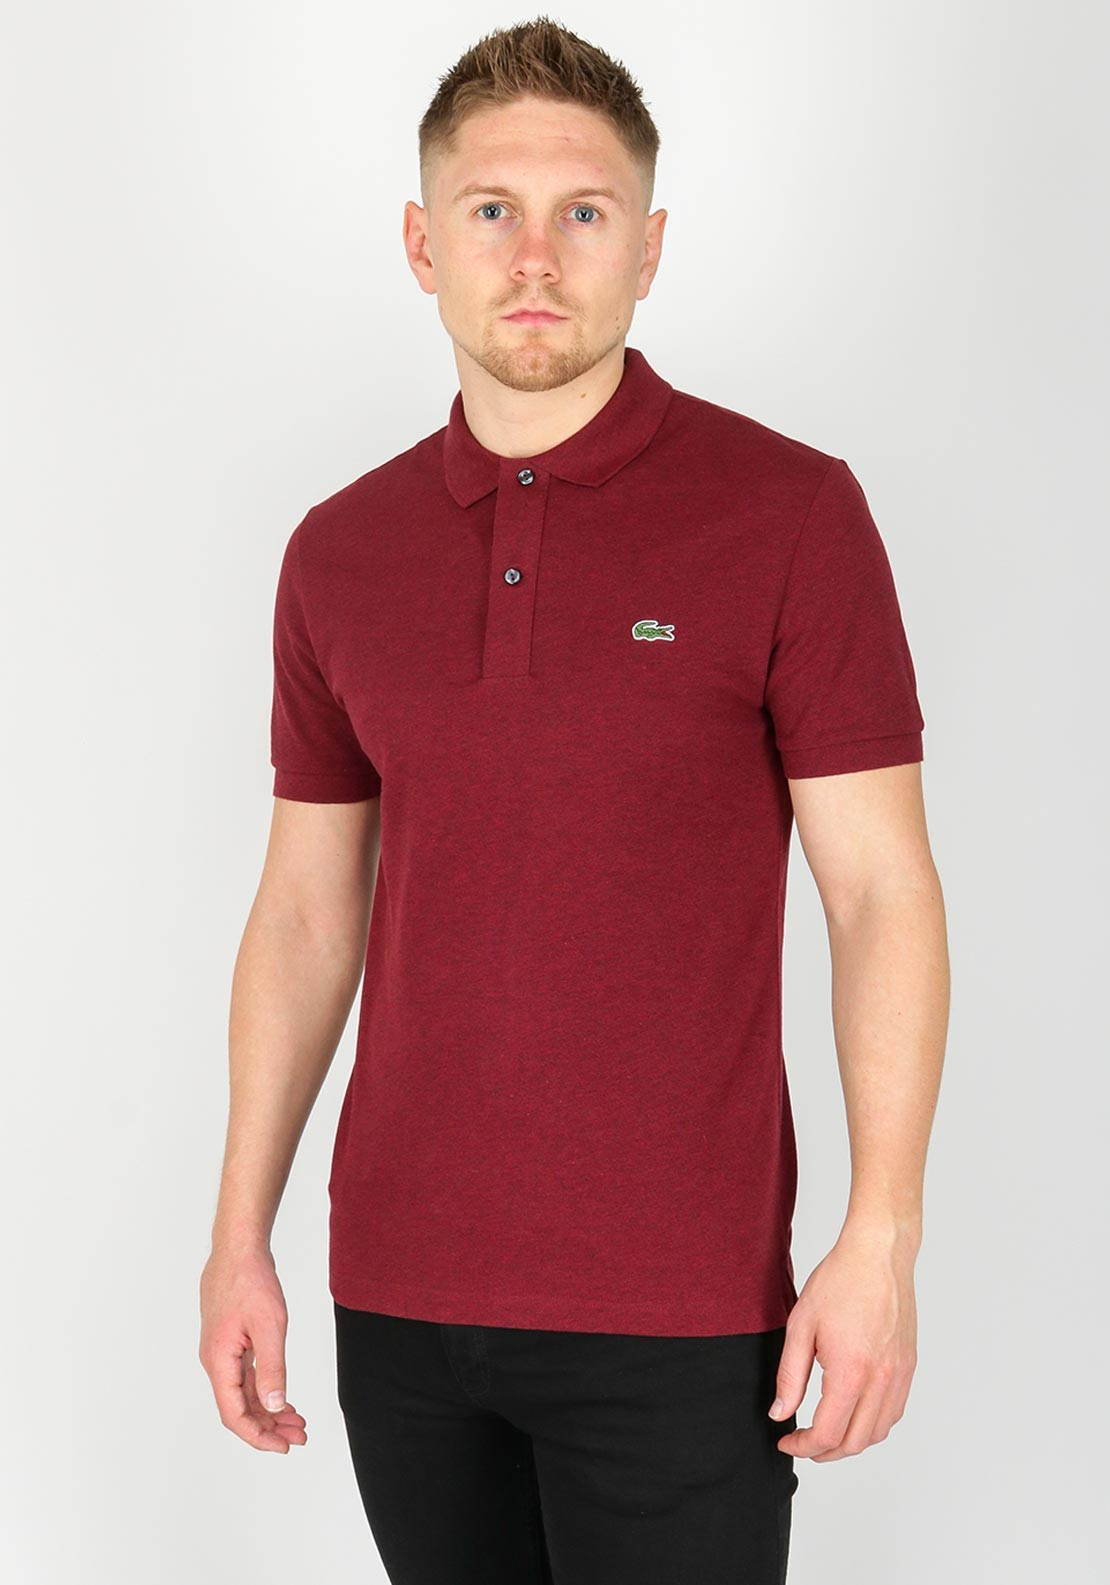 46a113c0 Lacoste Slim Fit Marl Polo Shirt, Burgundy. Be the first to review this  product